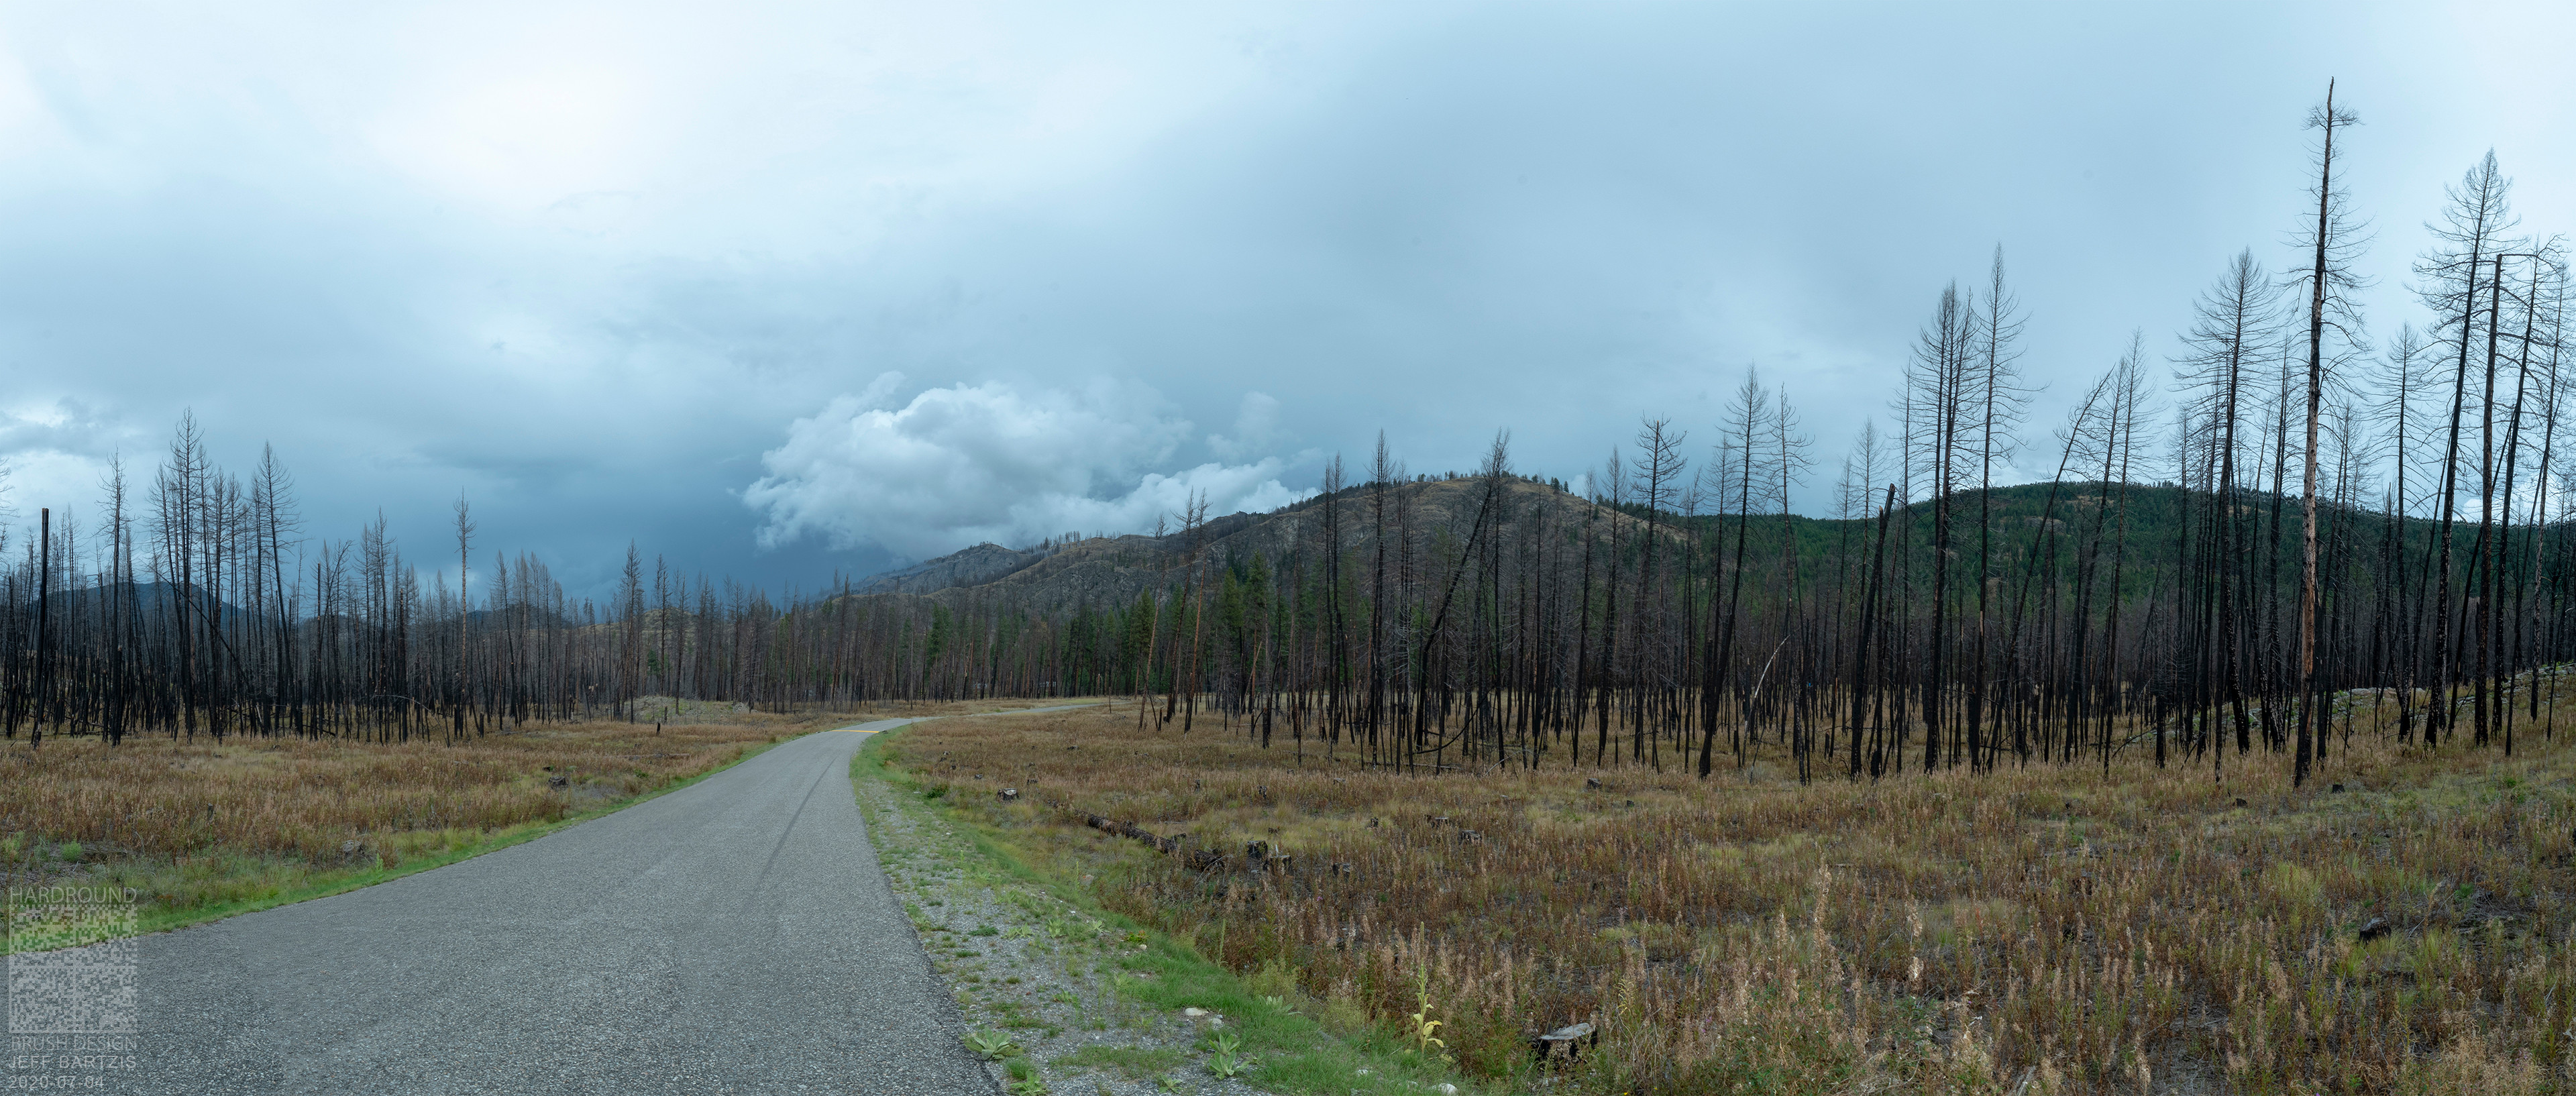 """Original Plate panorama (available to purchase in my store """"British Columbia Pano Pack"""")"""